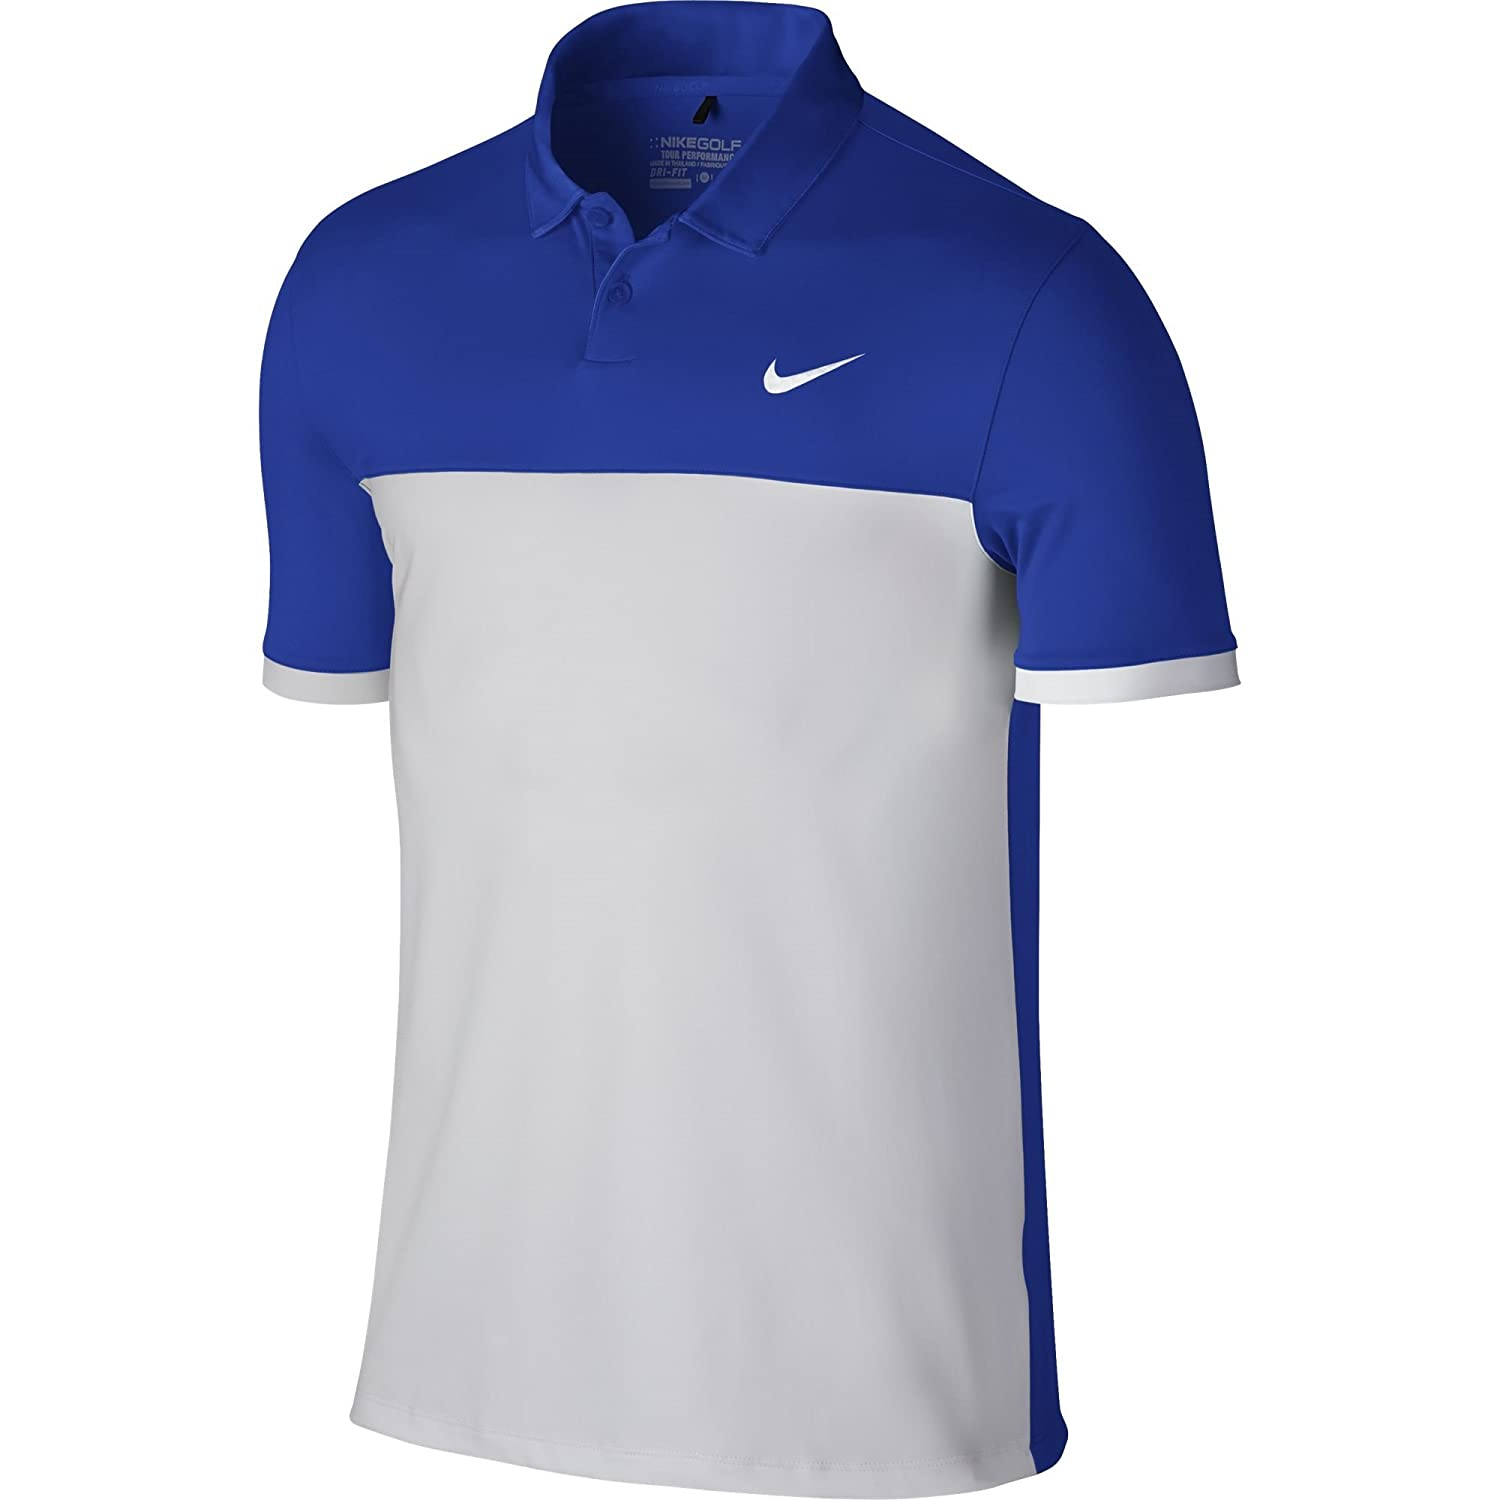 f248c67c Top2: Nike Golf CLOSEOUT Men's Icon Color Block Polo (Game Royal/White)  725527-480 (X-Large)